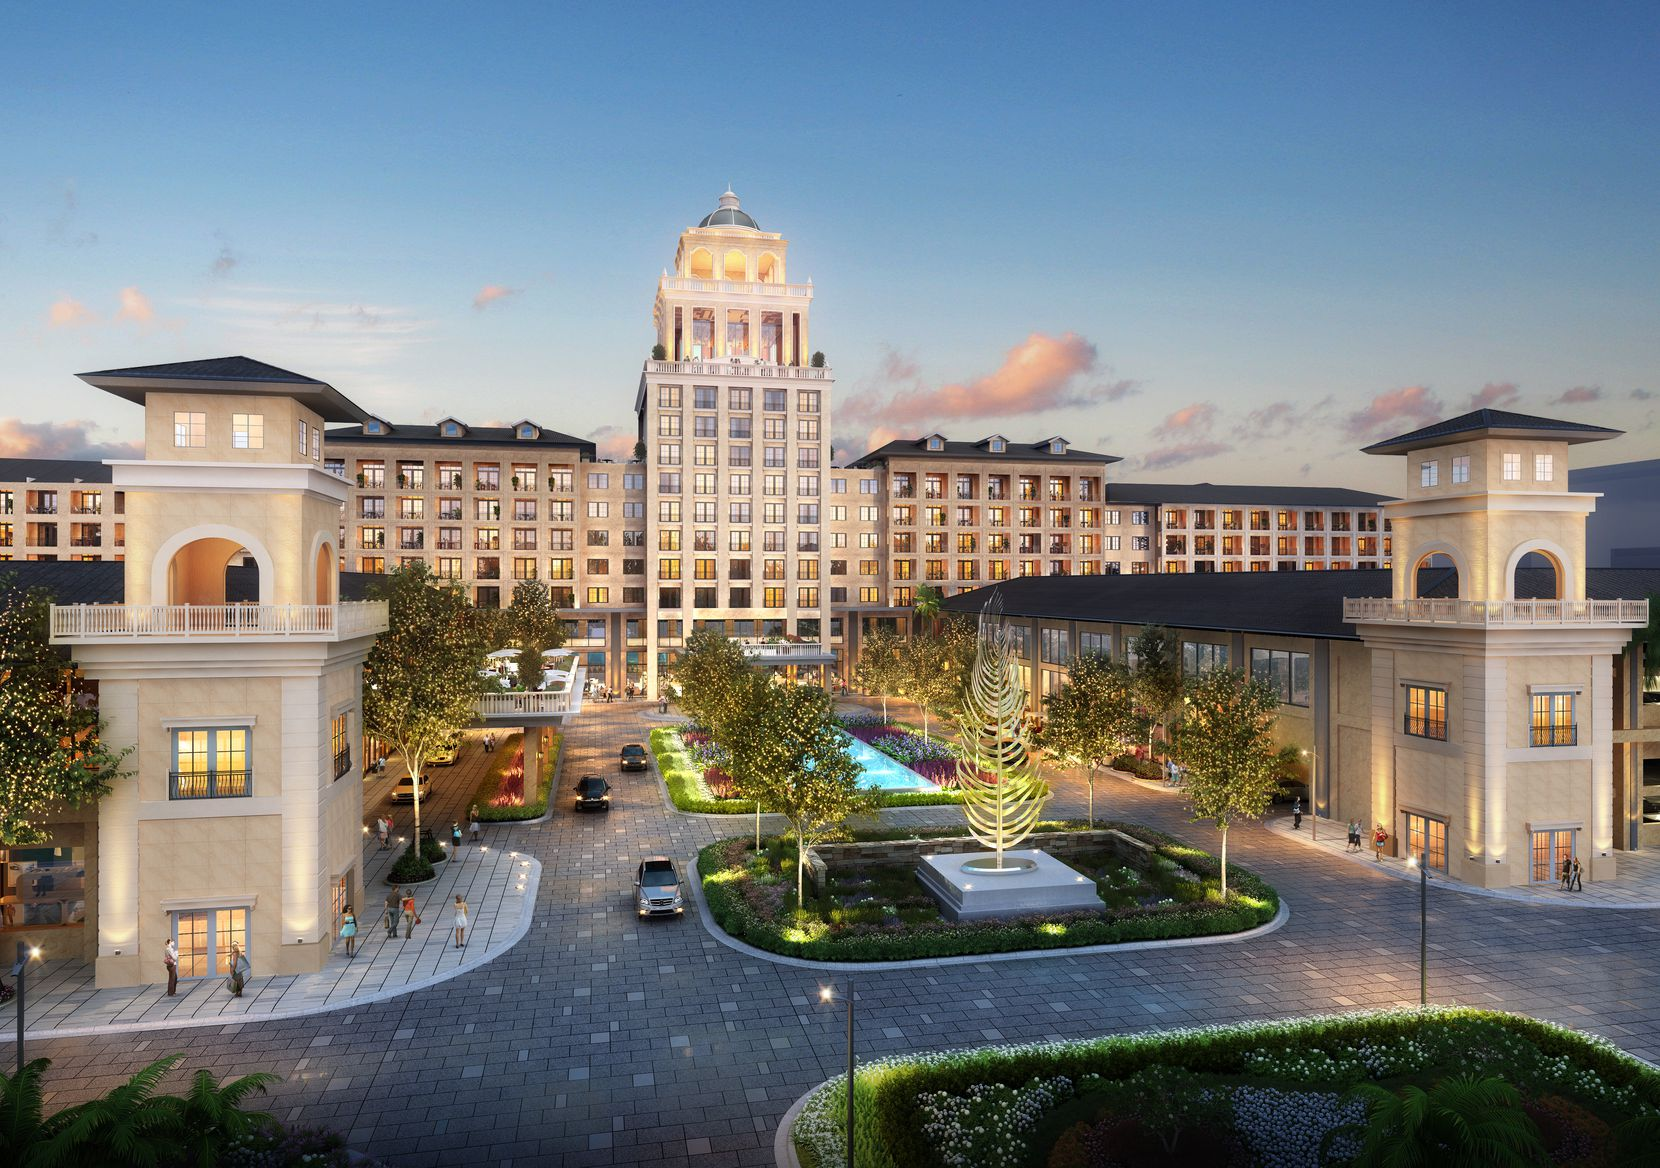 Construction is set to start later this year on the lakeside resort.